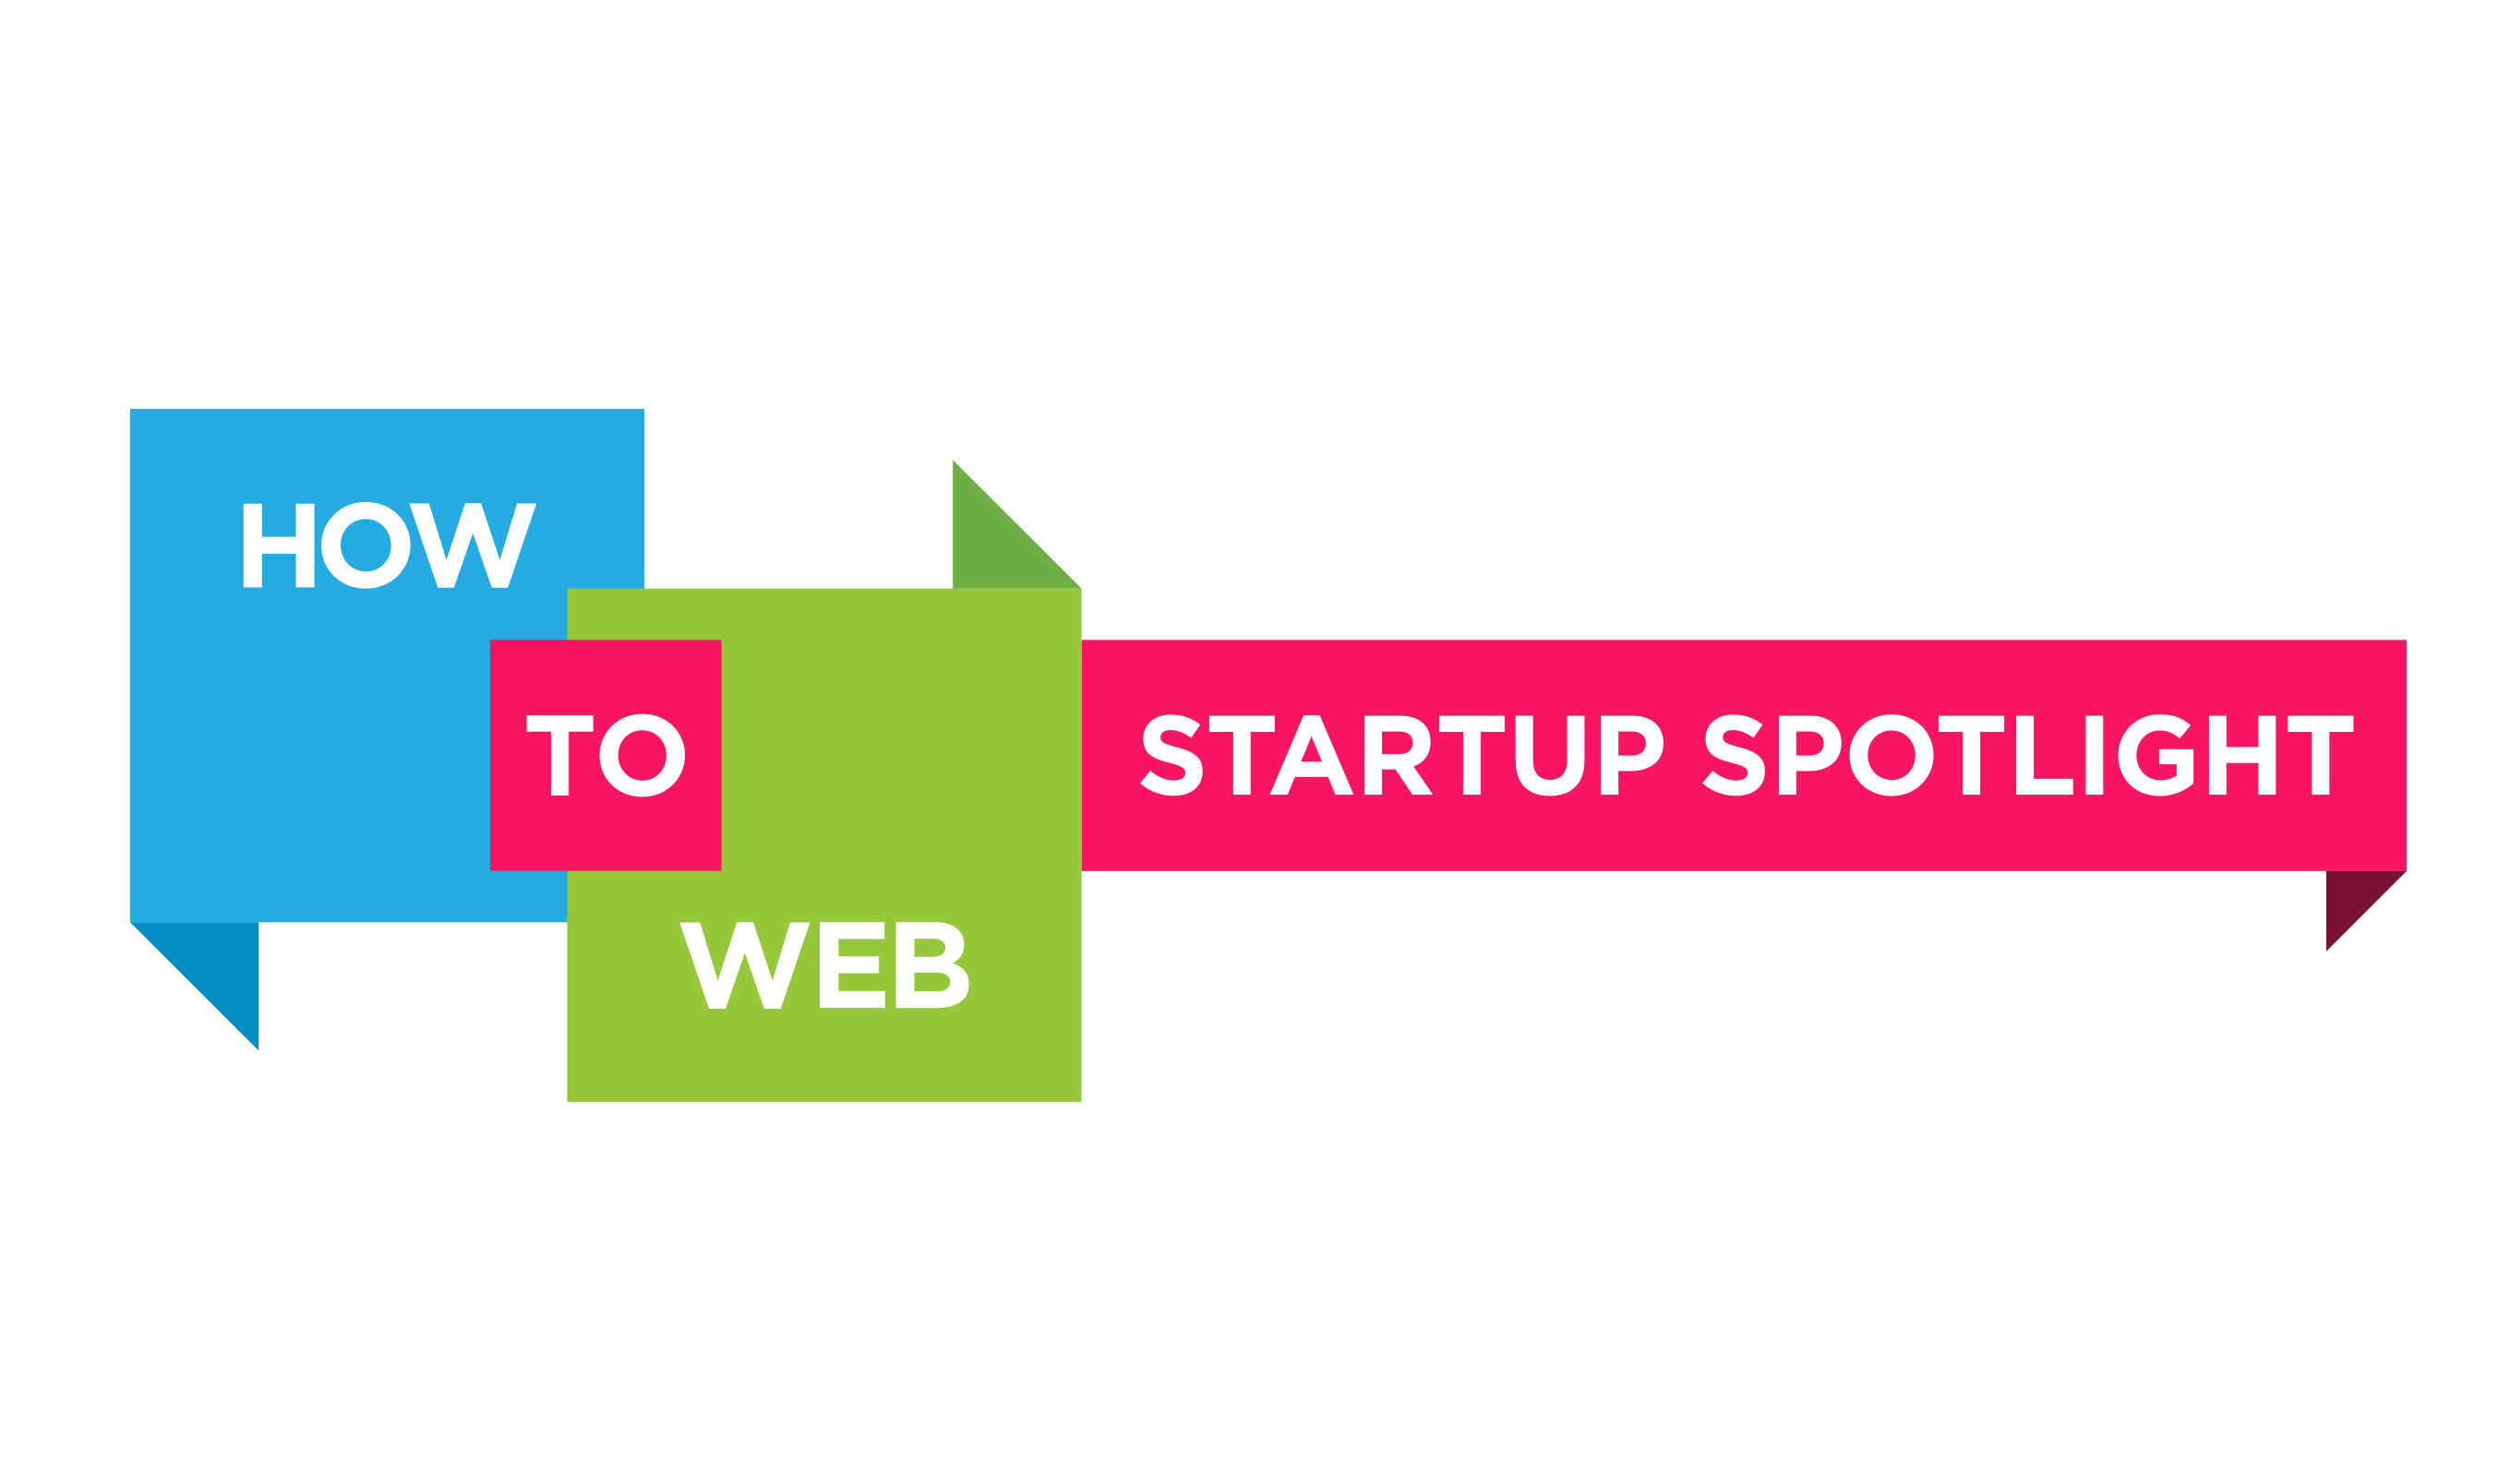 How to Web Startup Spotlight 2012 finalists